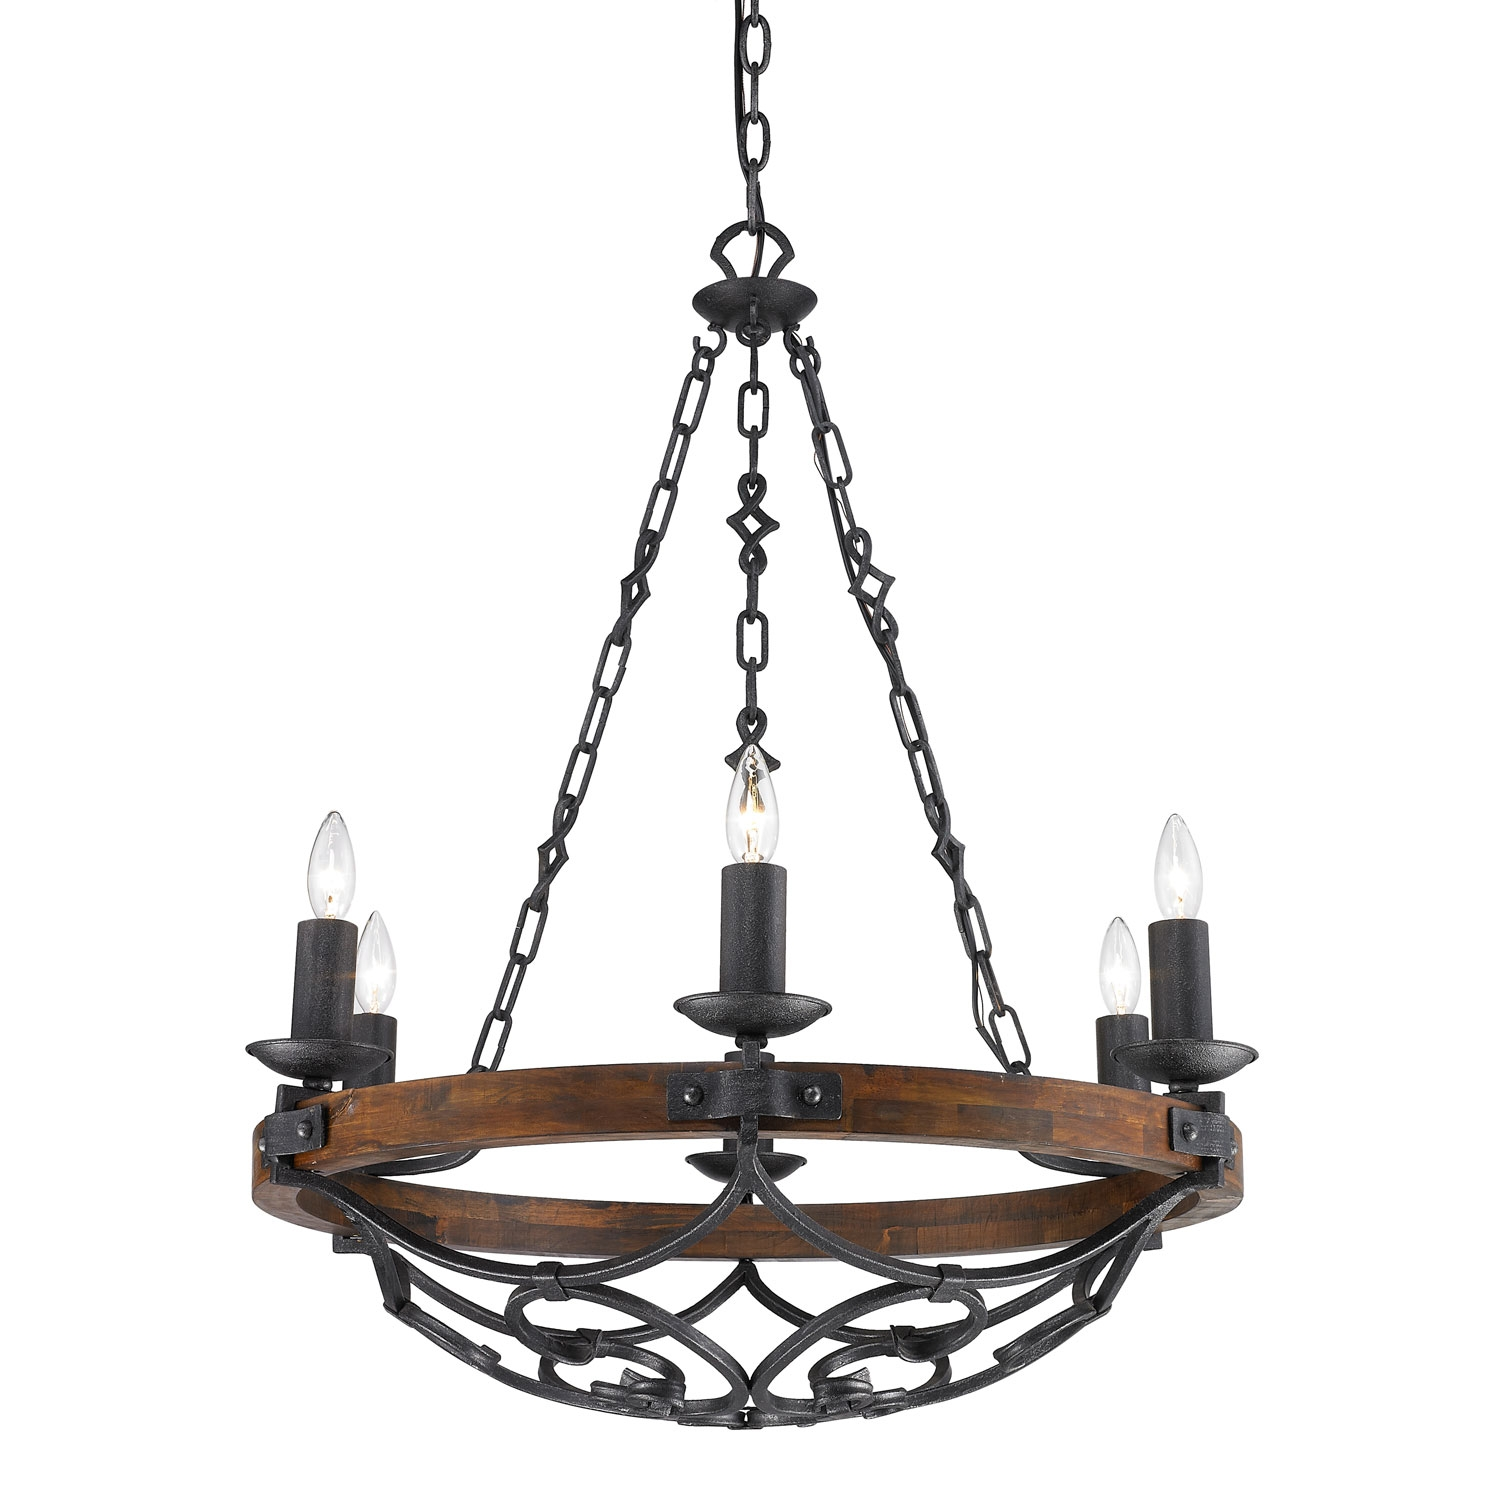 Golden Lighting Madera Black Iron Six Light Chandelier On Sale Intended For Iron Chandelier (Image 8 of 15)